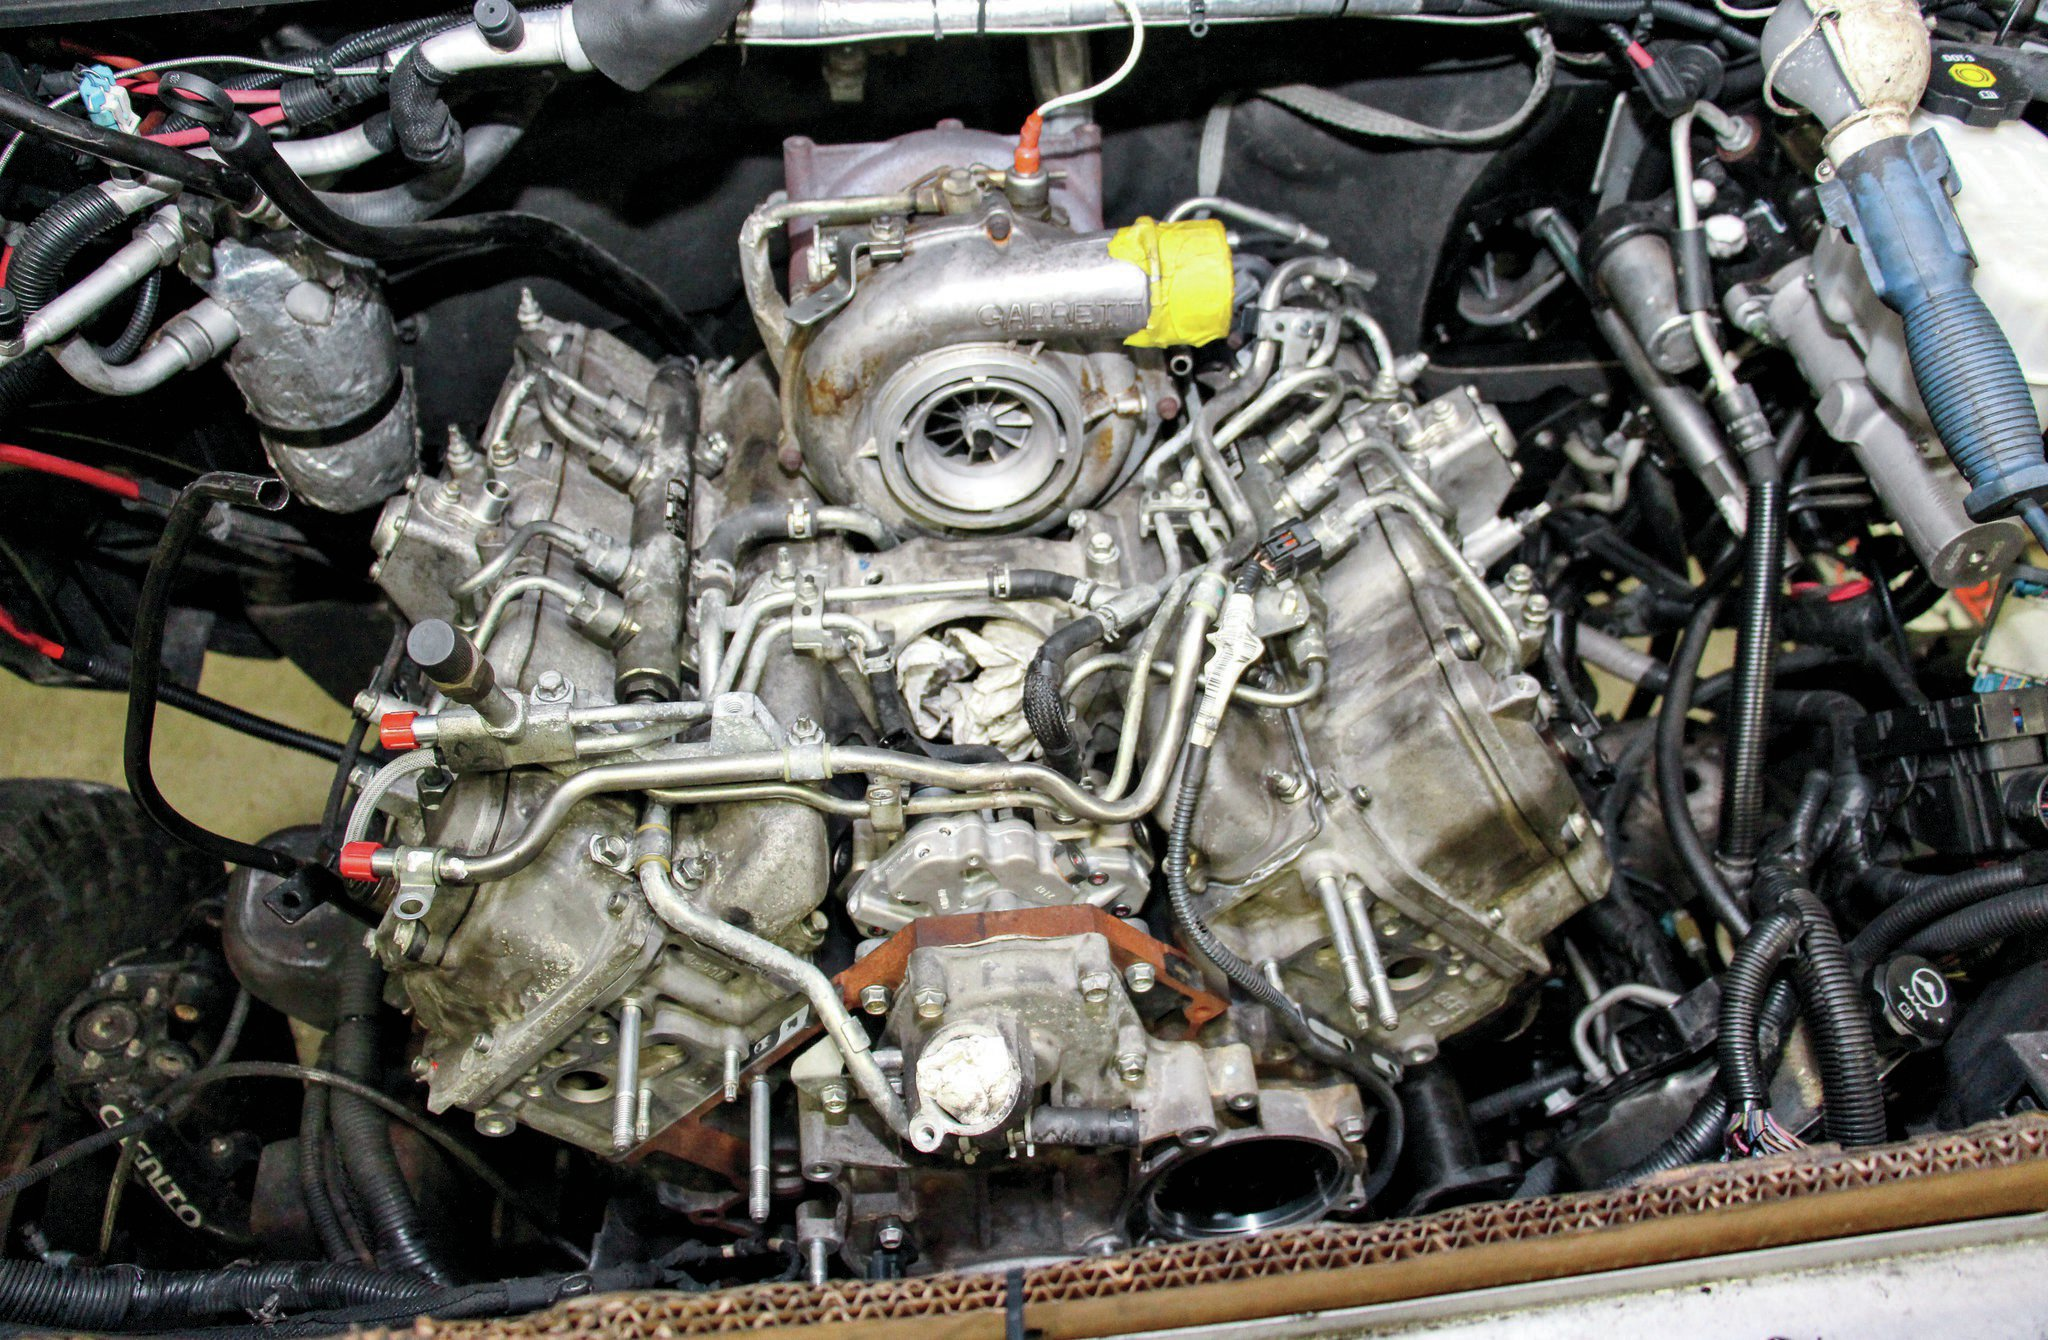 Adding 200 Horsepower To A Potent LMM Duramax Diesel Photo & Image